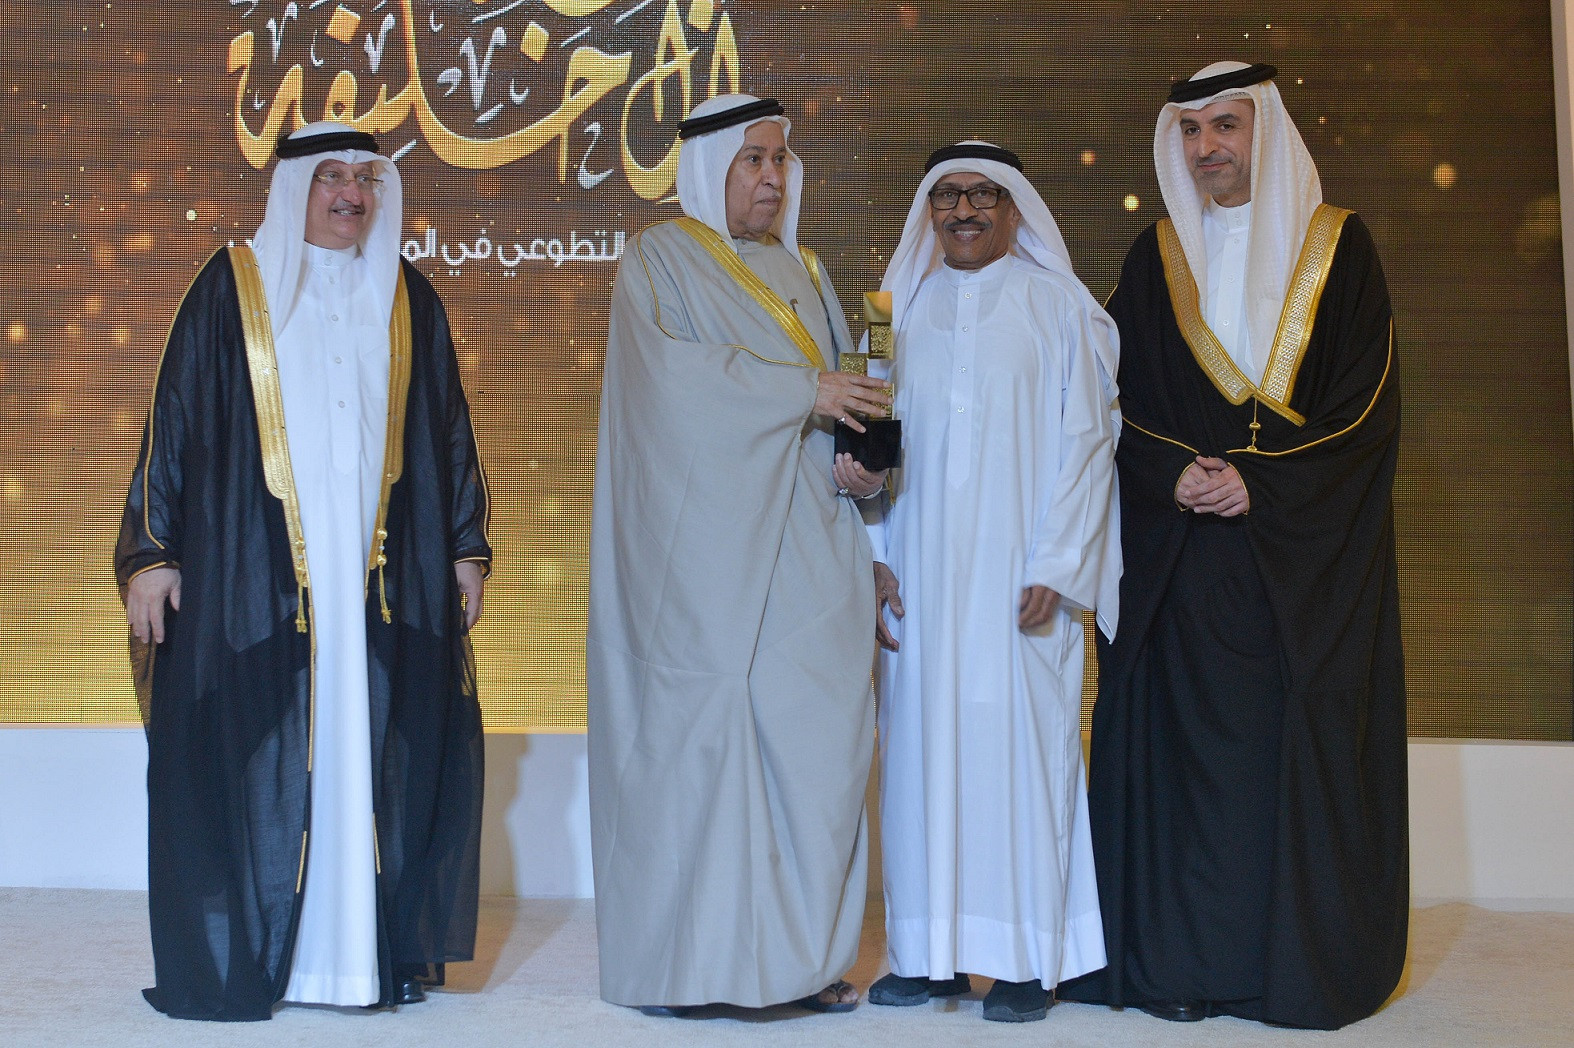 Bahrain Olympic Committee President congratulates winners of voluntary work award